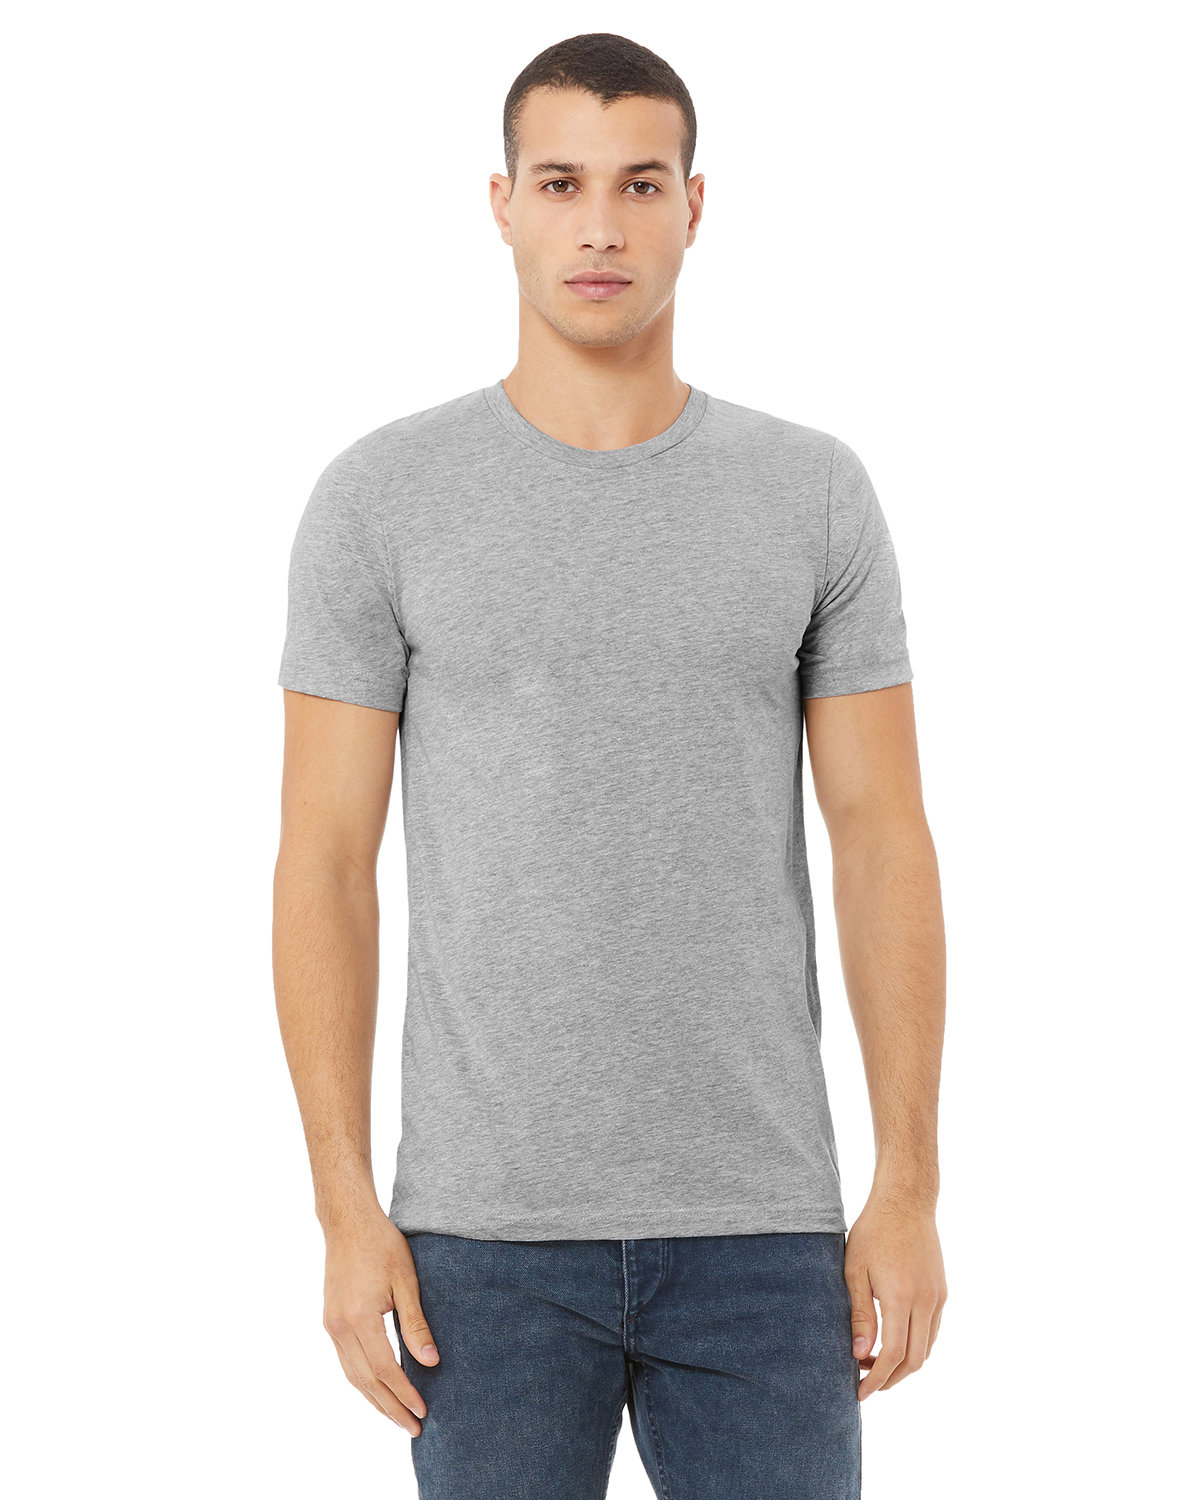 Bella + Canvas Unisex Made In The USA Jersey T-Shirt ATHLETIC HEATHER